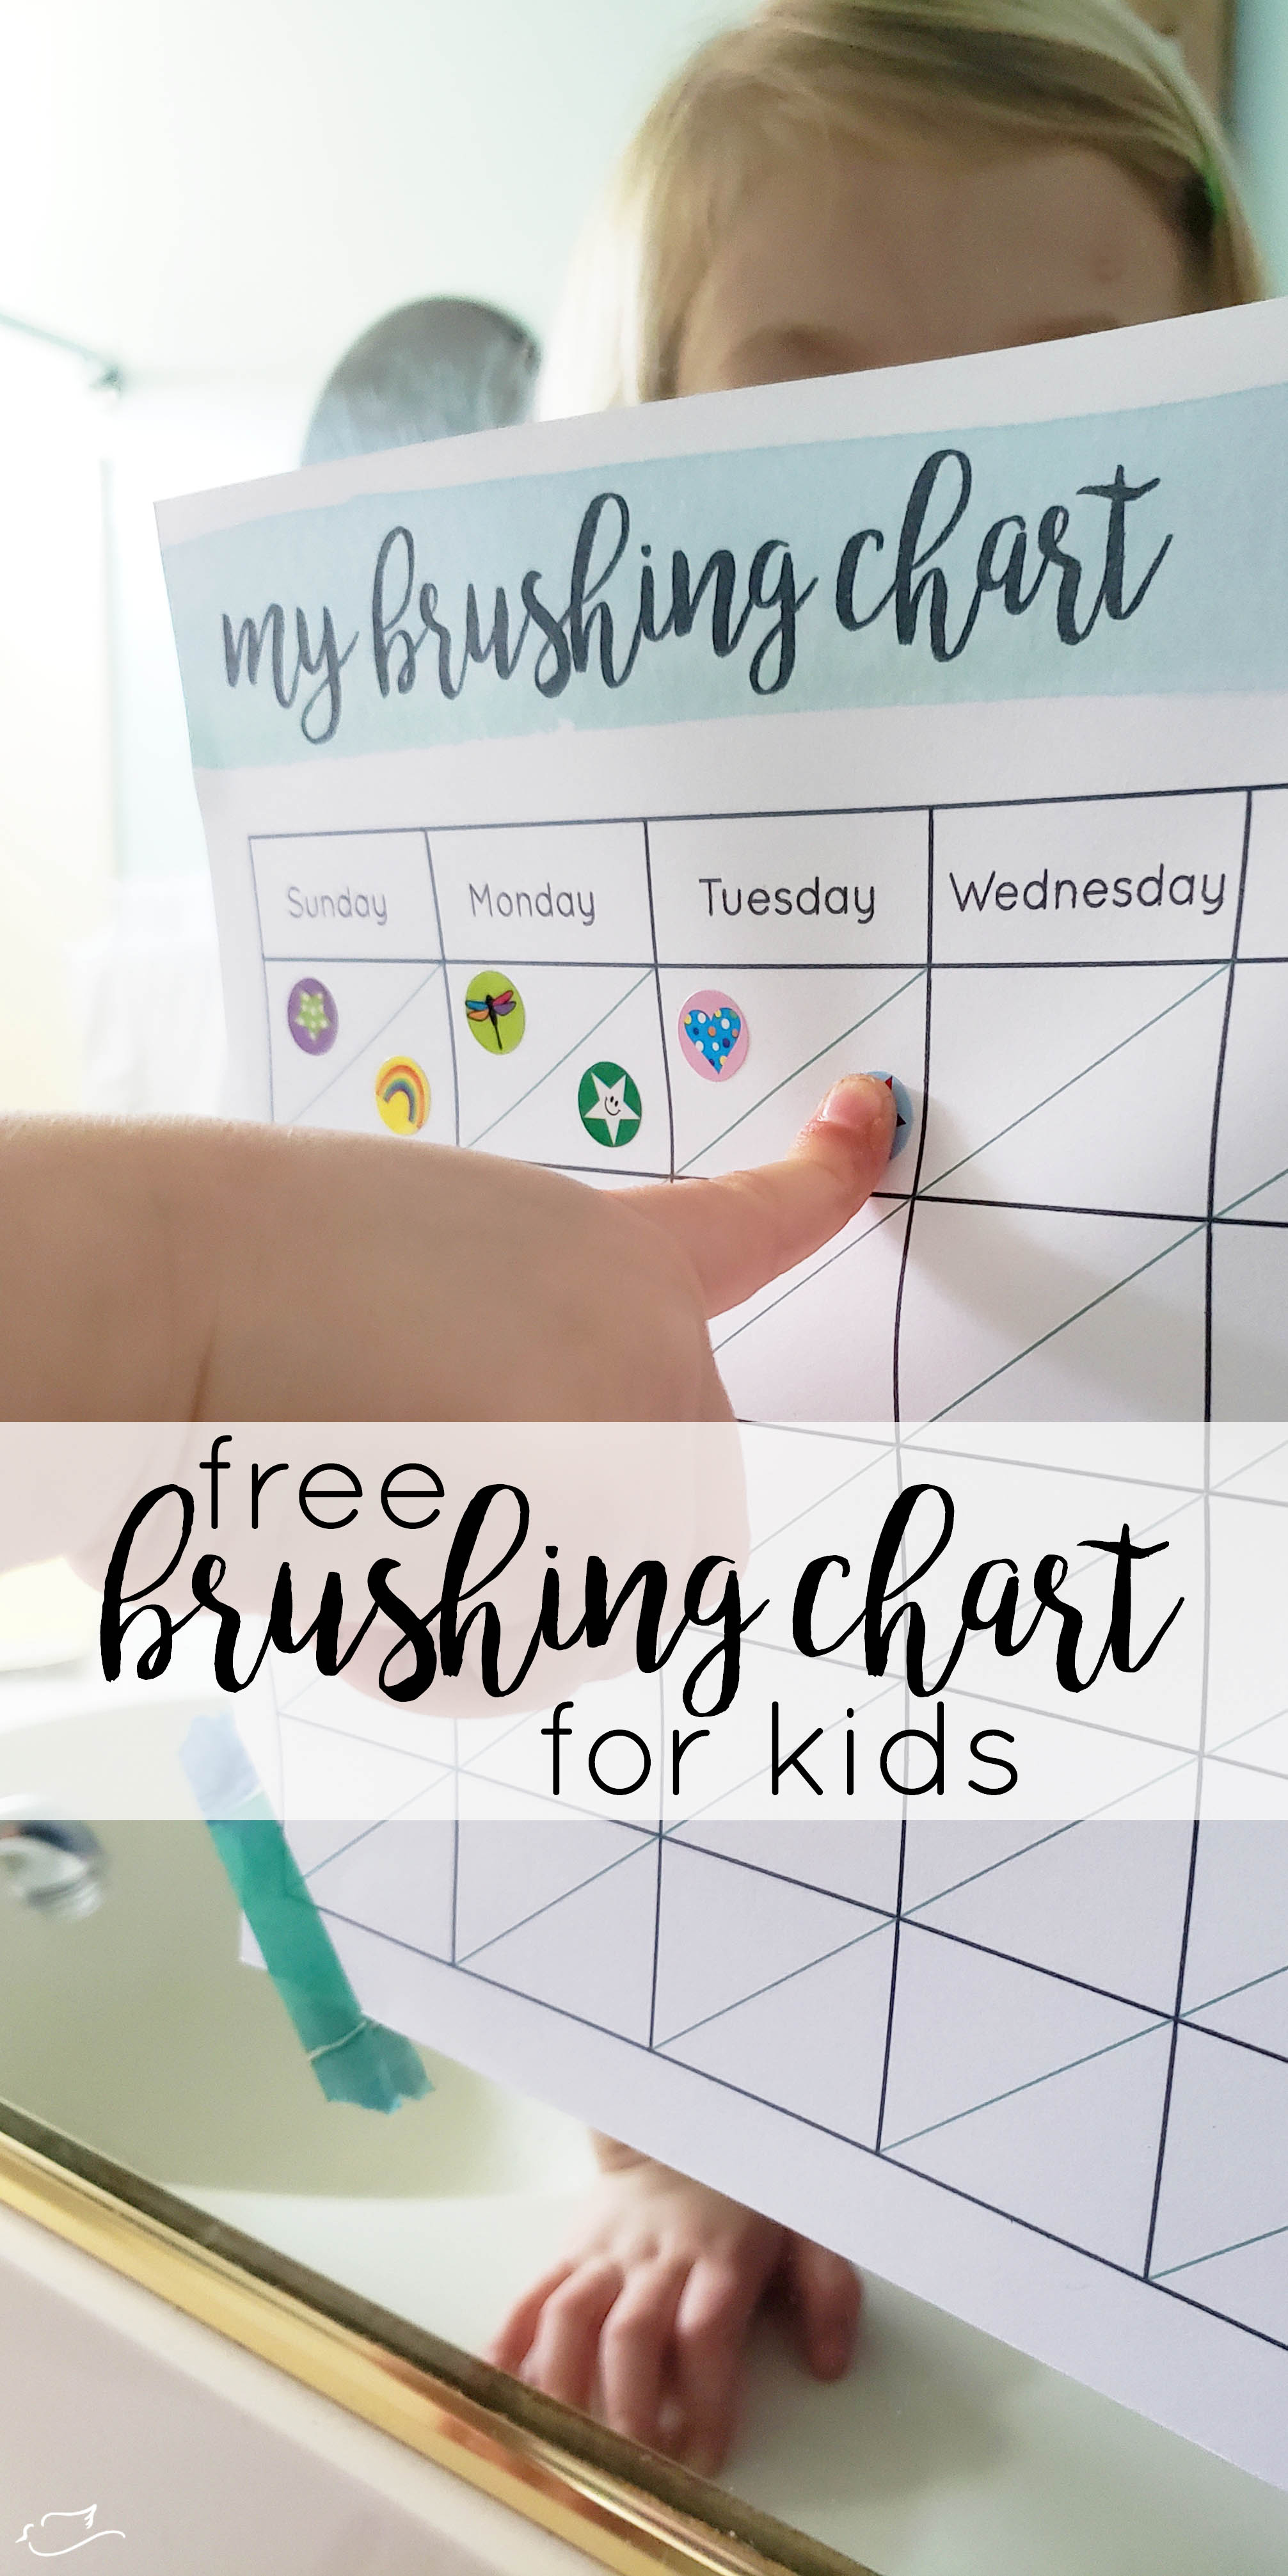 photo regarding Printable Tooth Brushing Charts called style Excellent behavior with a enamel brushing chart - Small Dove Blog site